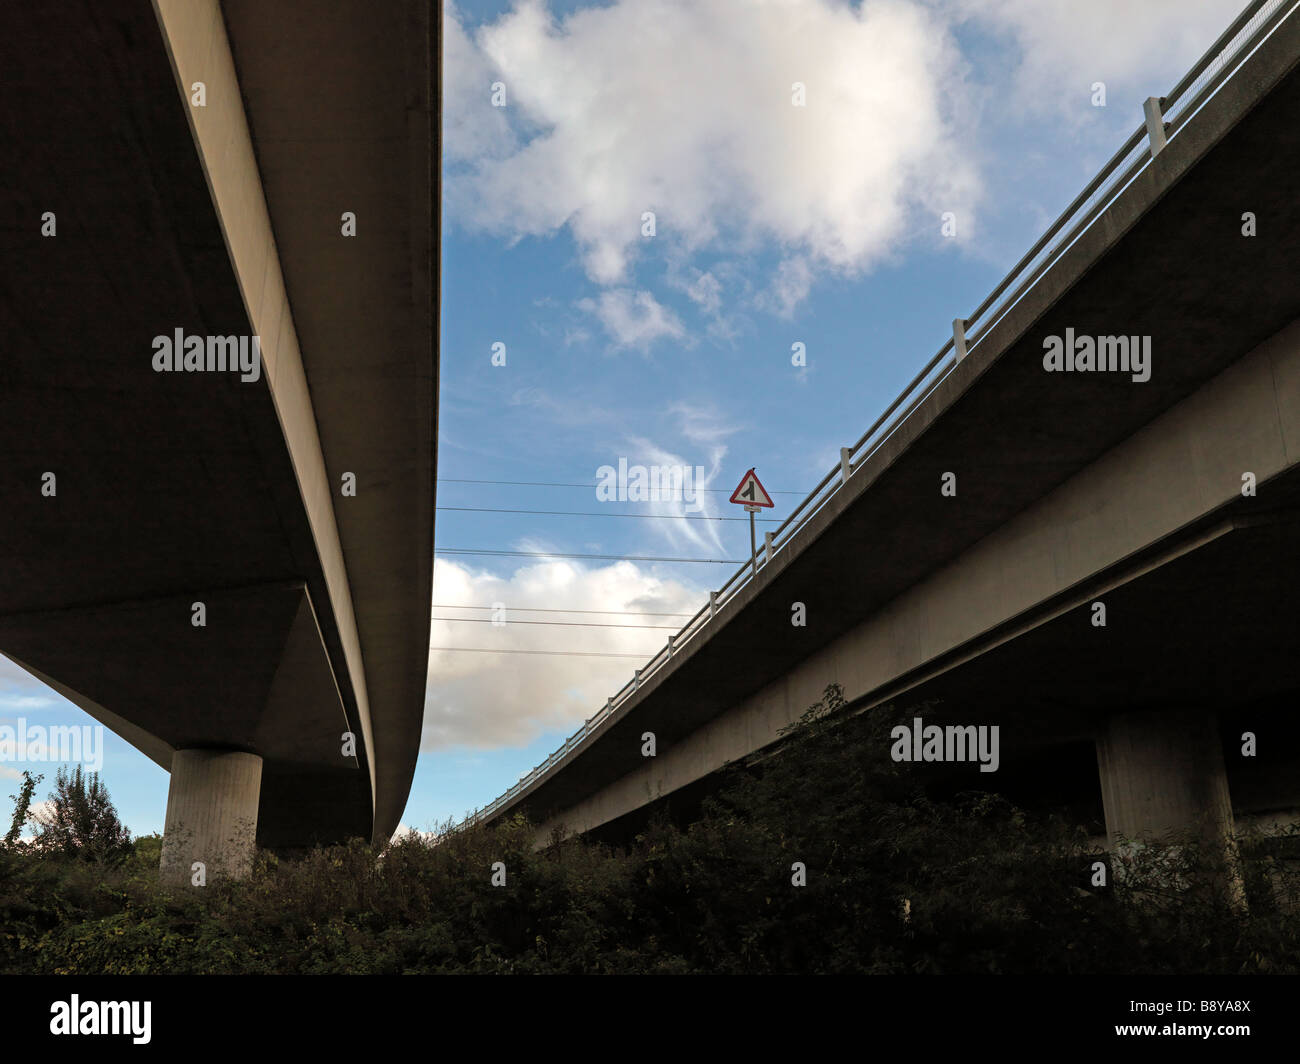 fly-over road bridges with junction sign - Stock Image